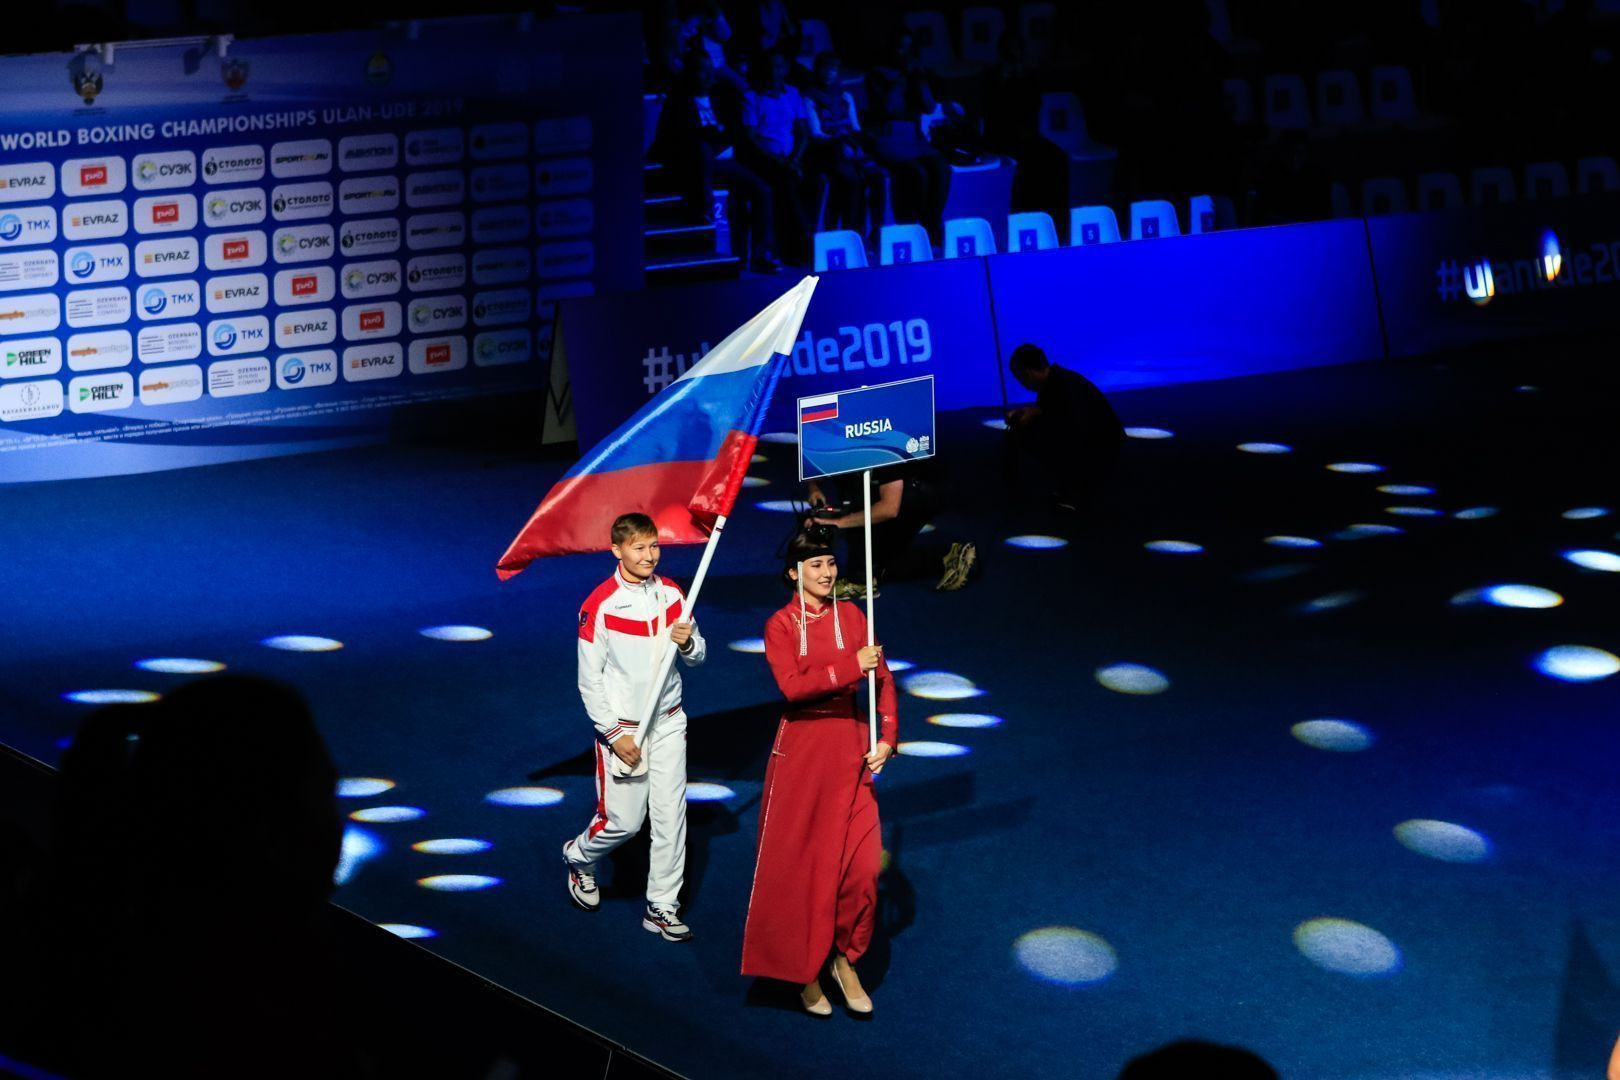 The Russian flag received rapturous applause from the home crowd ©AIBA